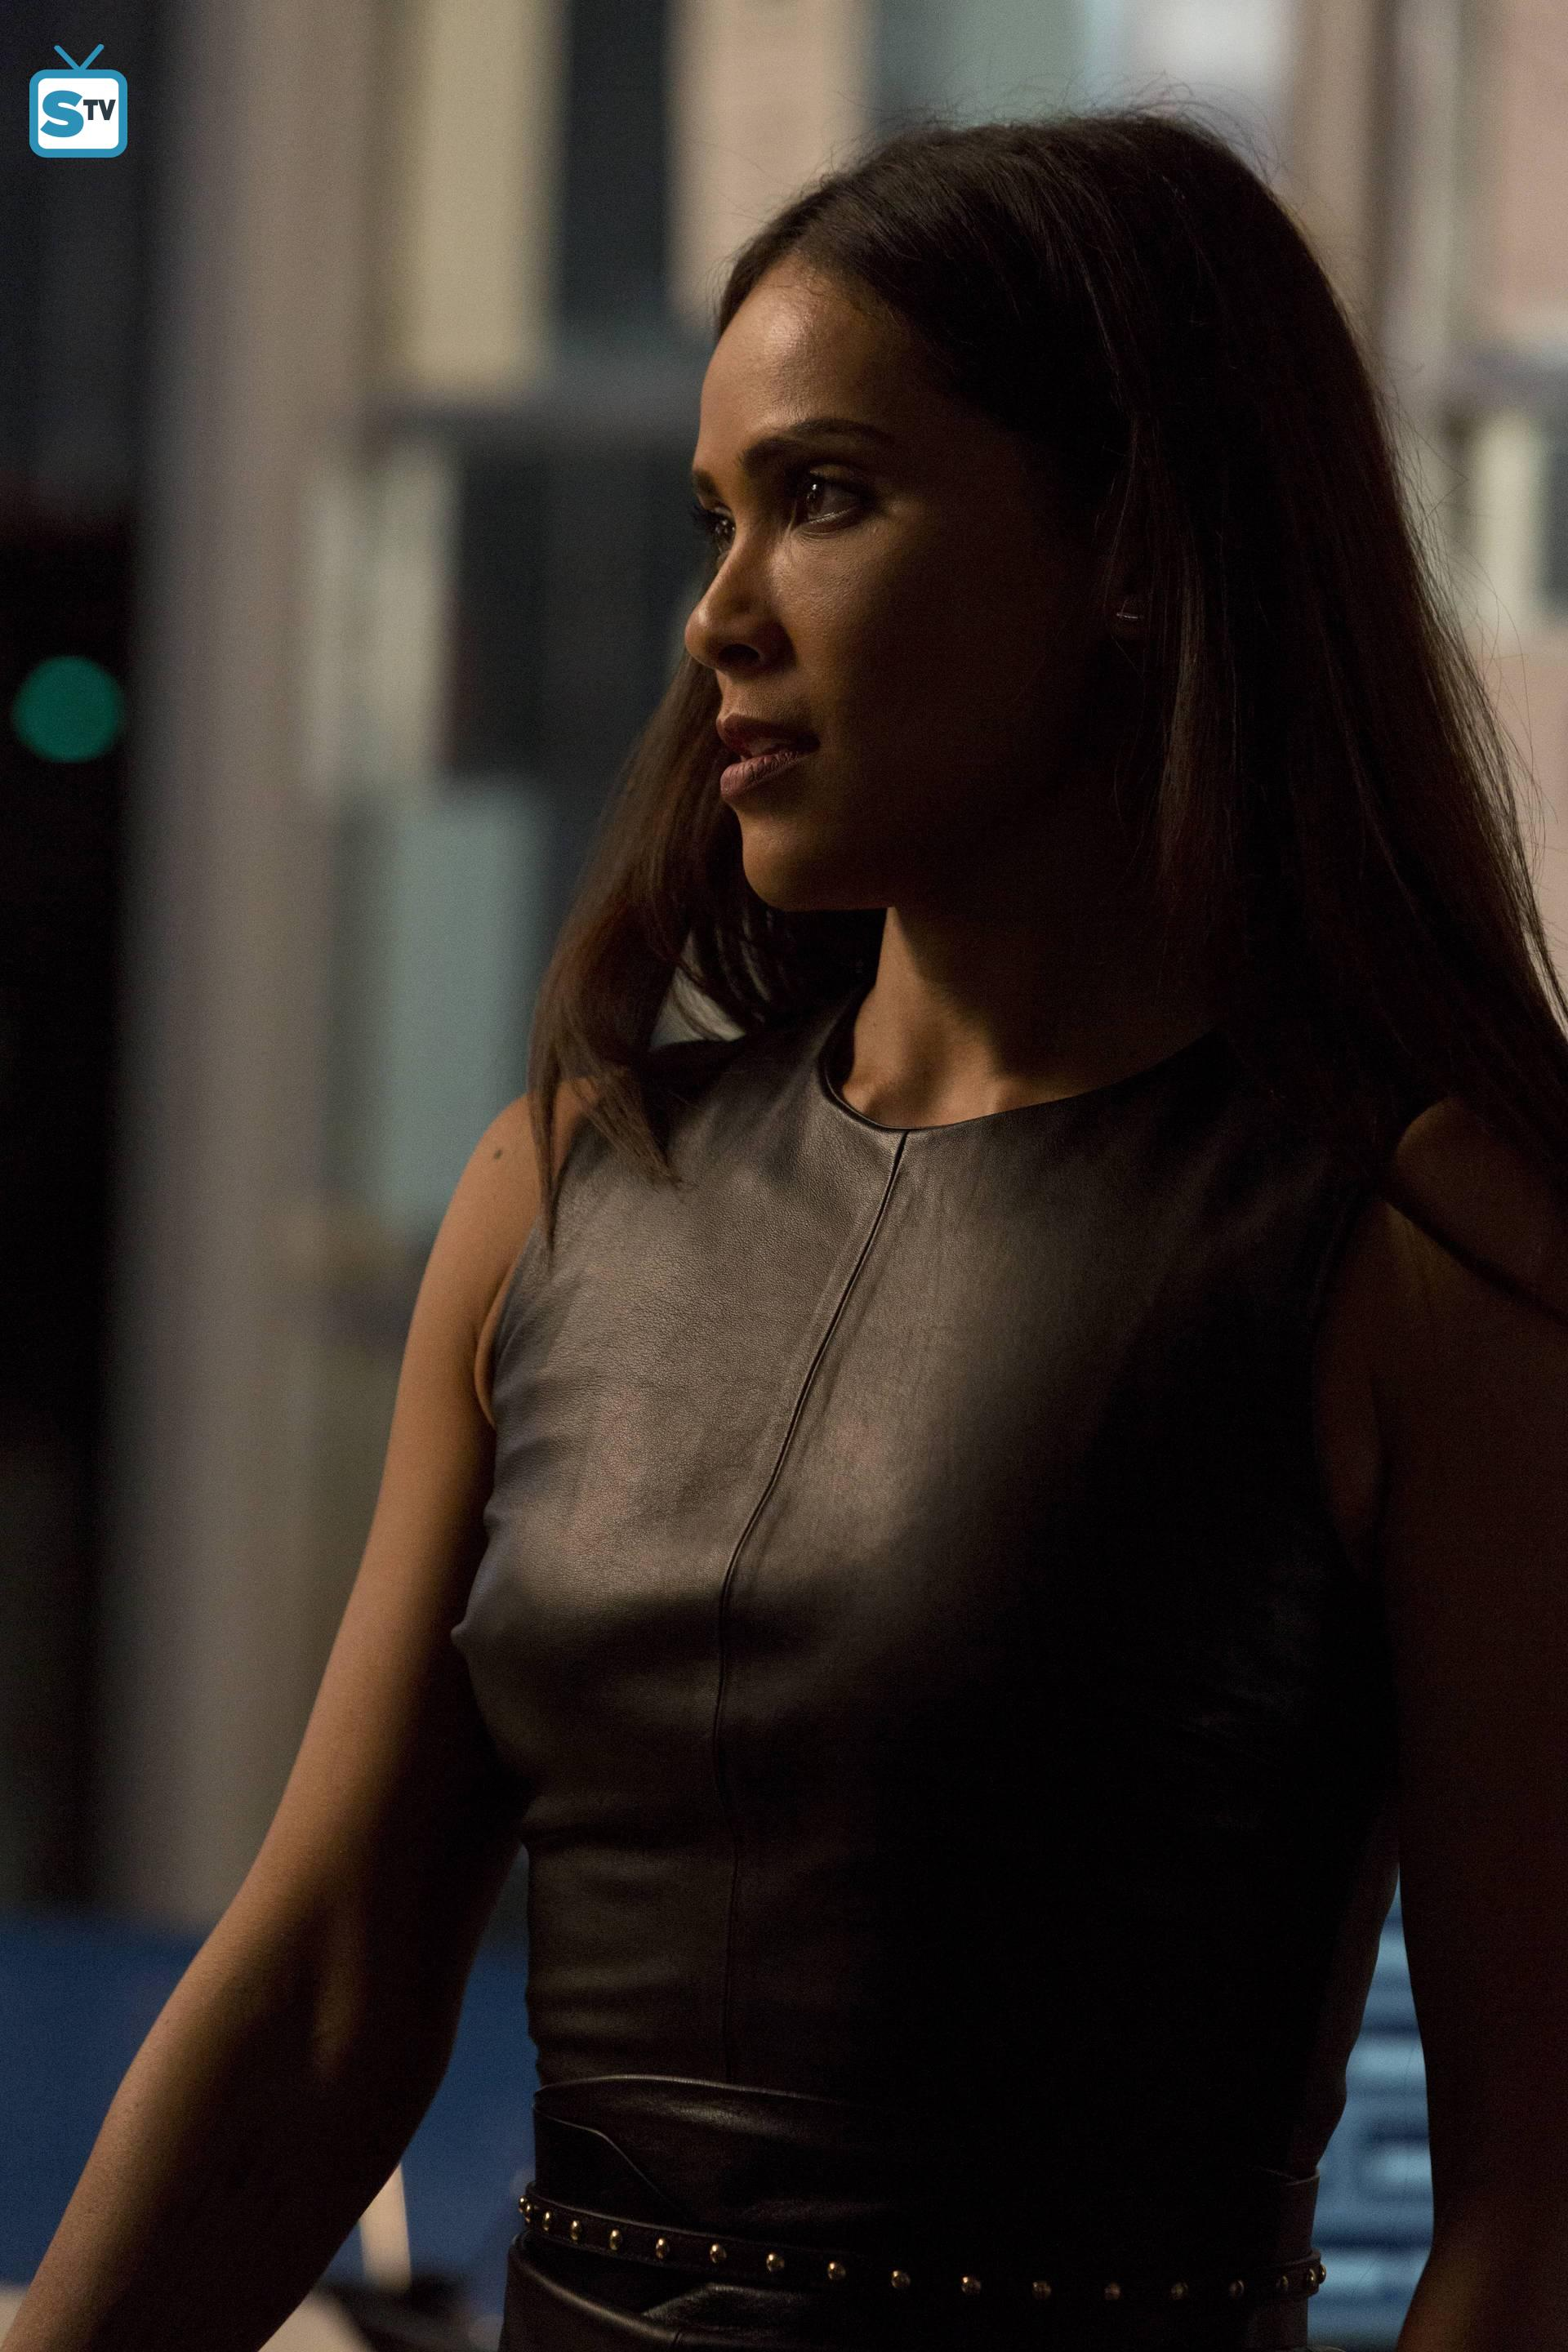 Mazikeen Lilith